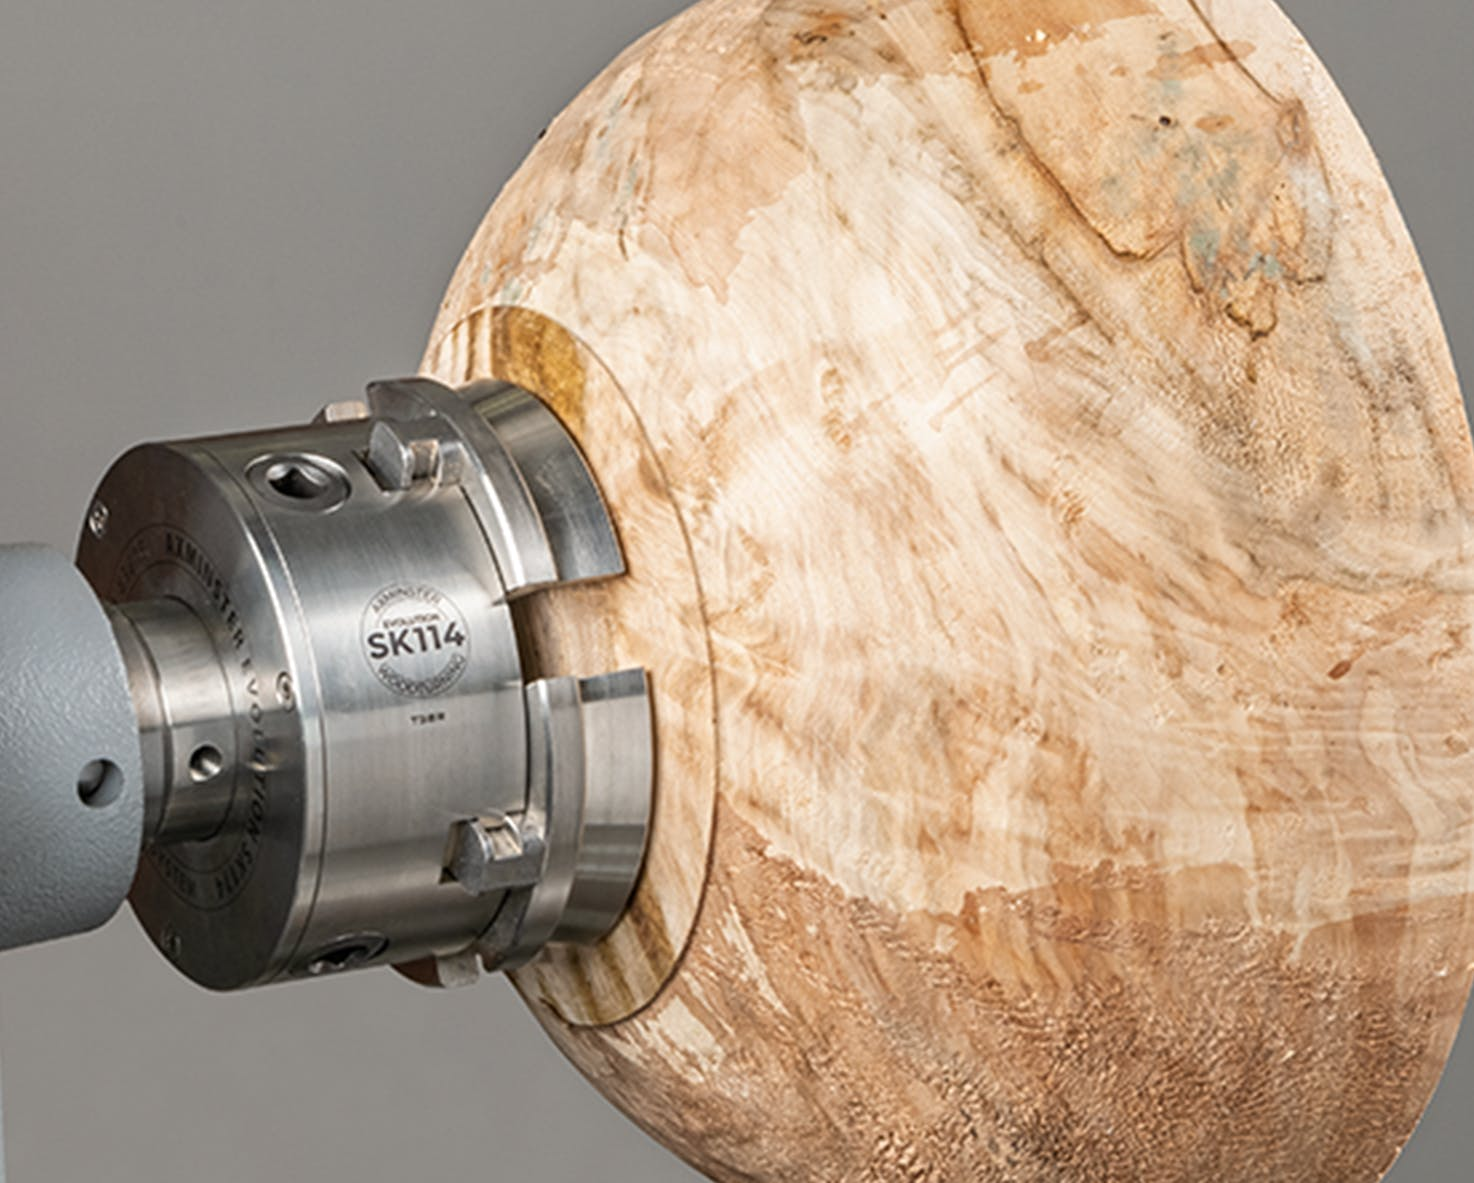 Axminster Woodturning Chuck